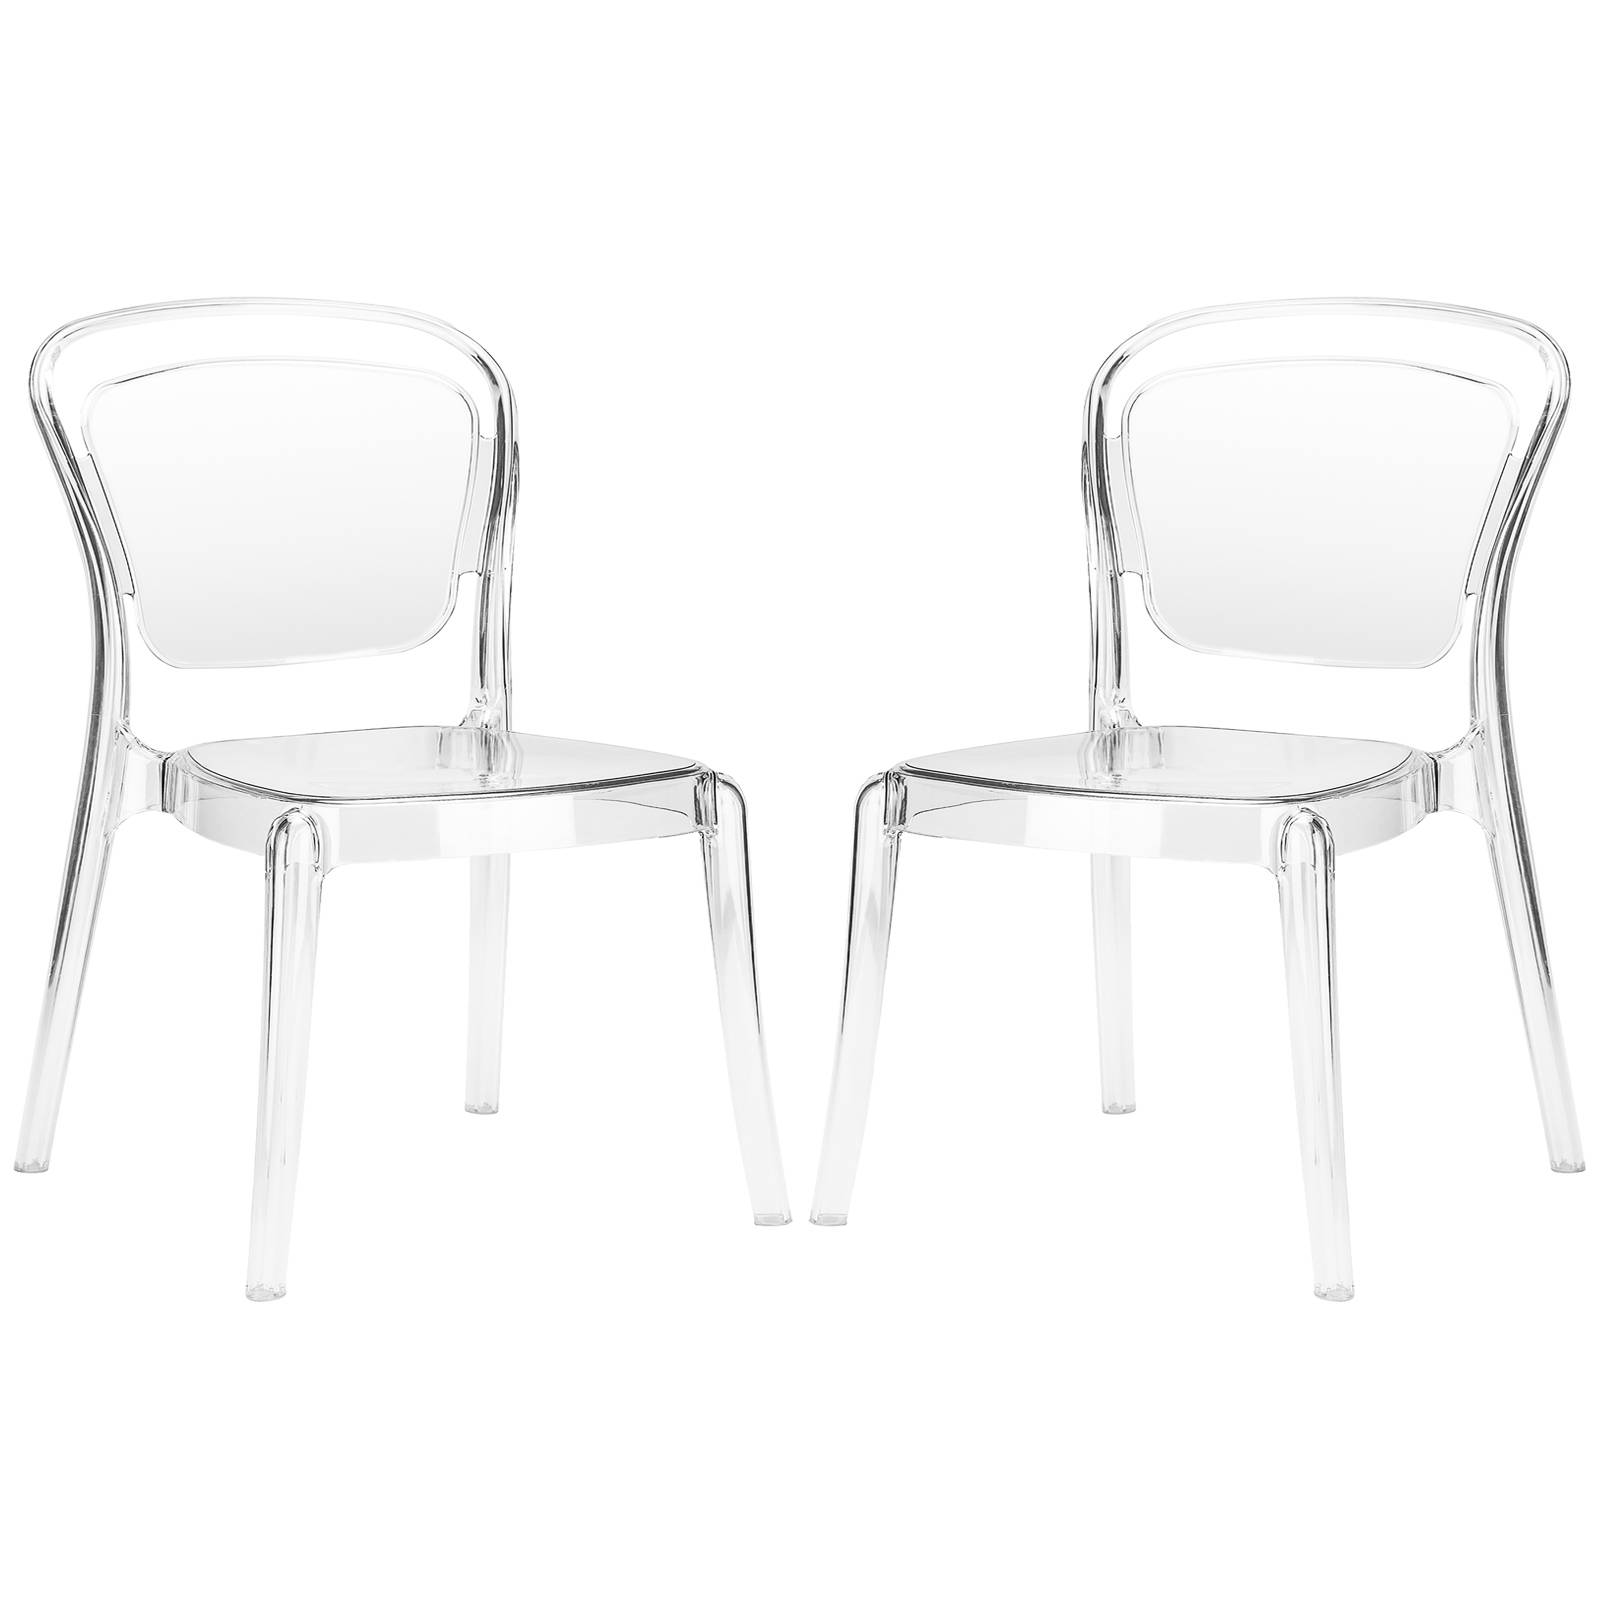 Enjoyable 2 Edgemod Furniture Lucent Clear Dining Side Chairs Ocoug Best Dining Table And Chair Ideas Images Ocougorg